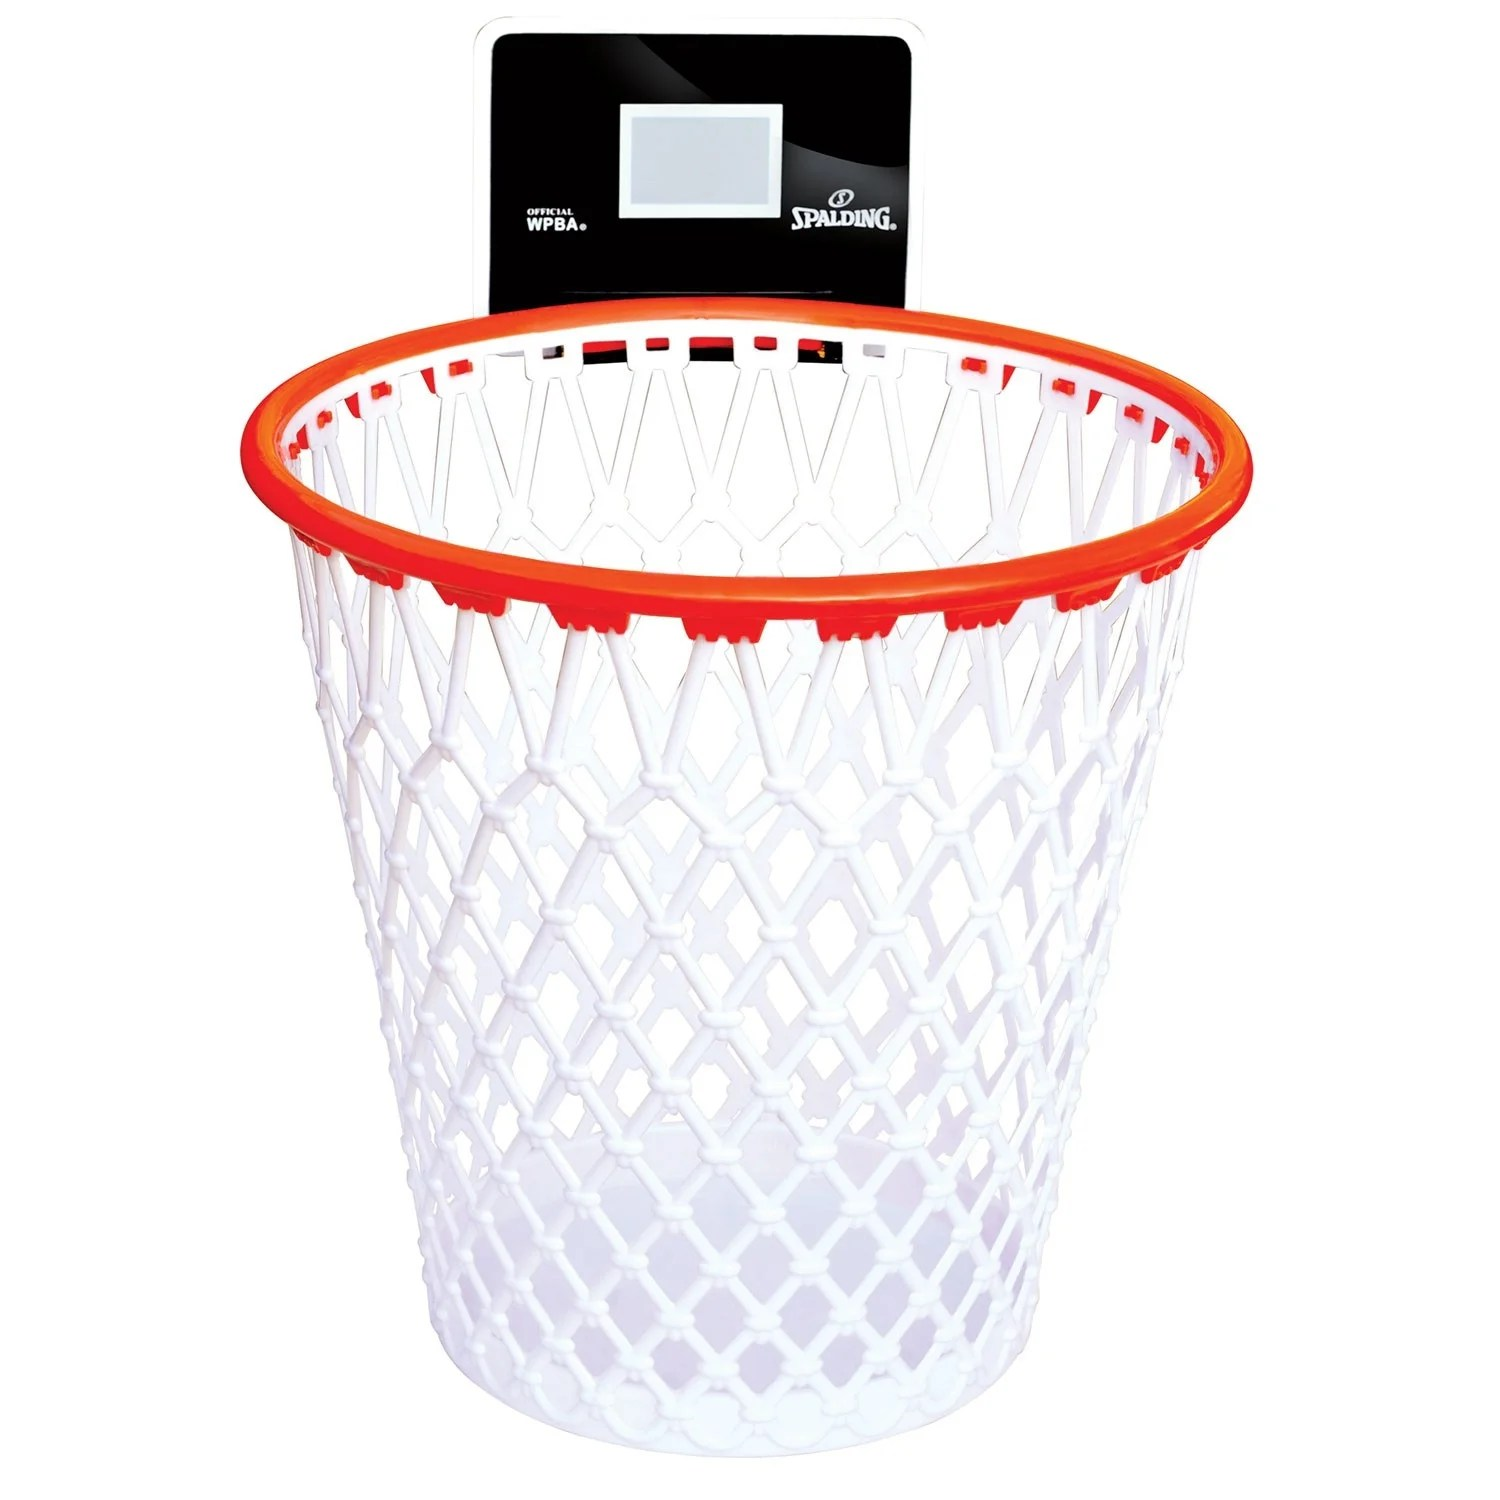 Laundry Trash Cans Spalding Hoopster Waste Basket Basketball Hoop Trash Can With Backboard 12 25